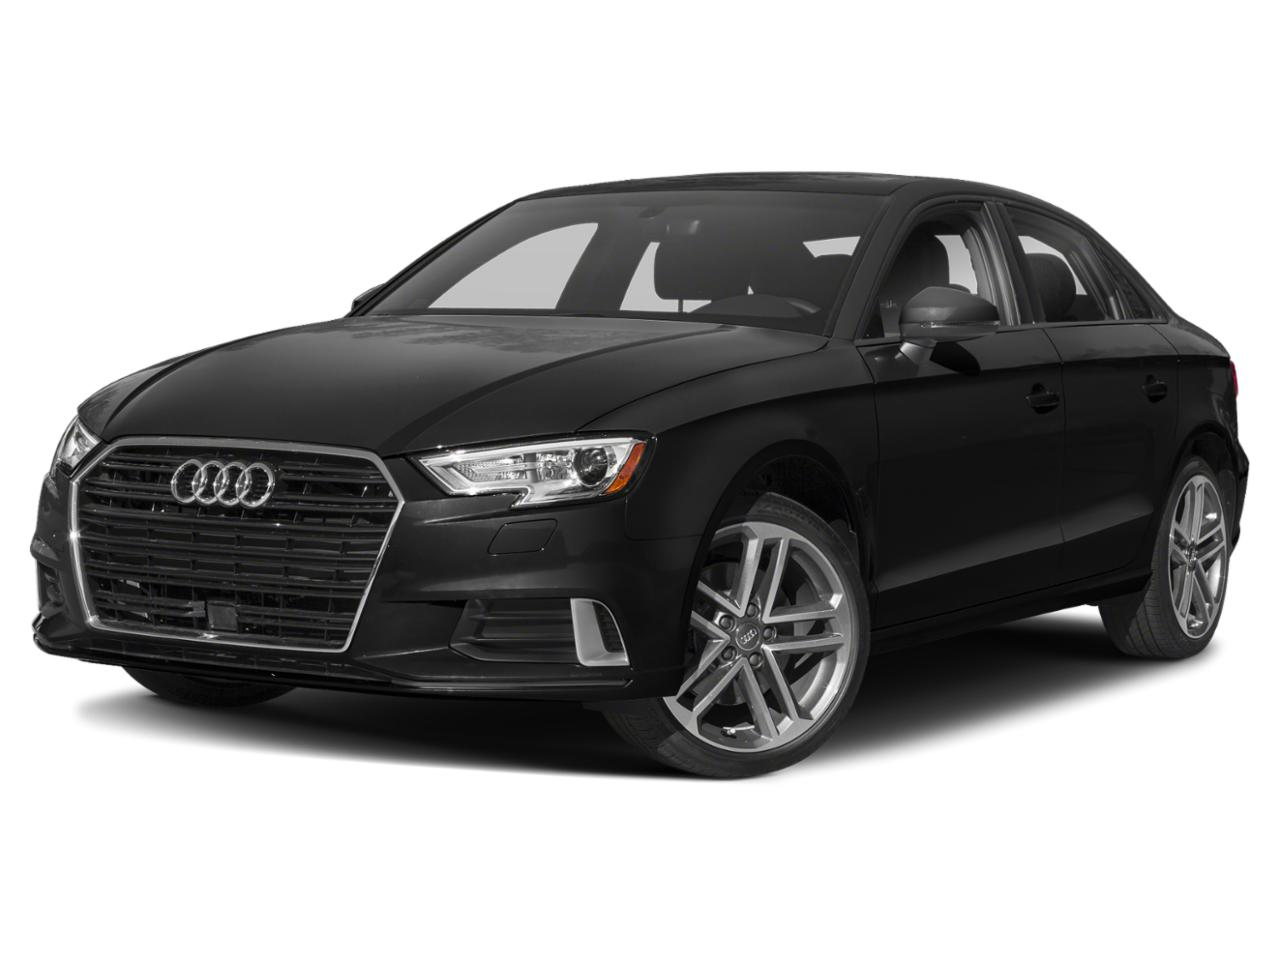 2018 Audi A3 Sedan Vehicle Photo in Bowie, MD 20716